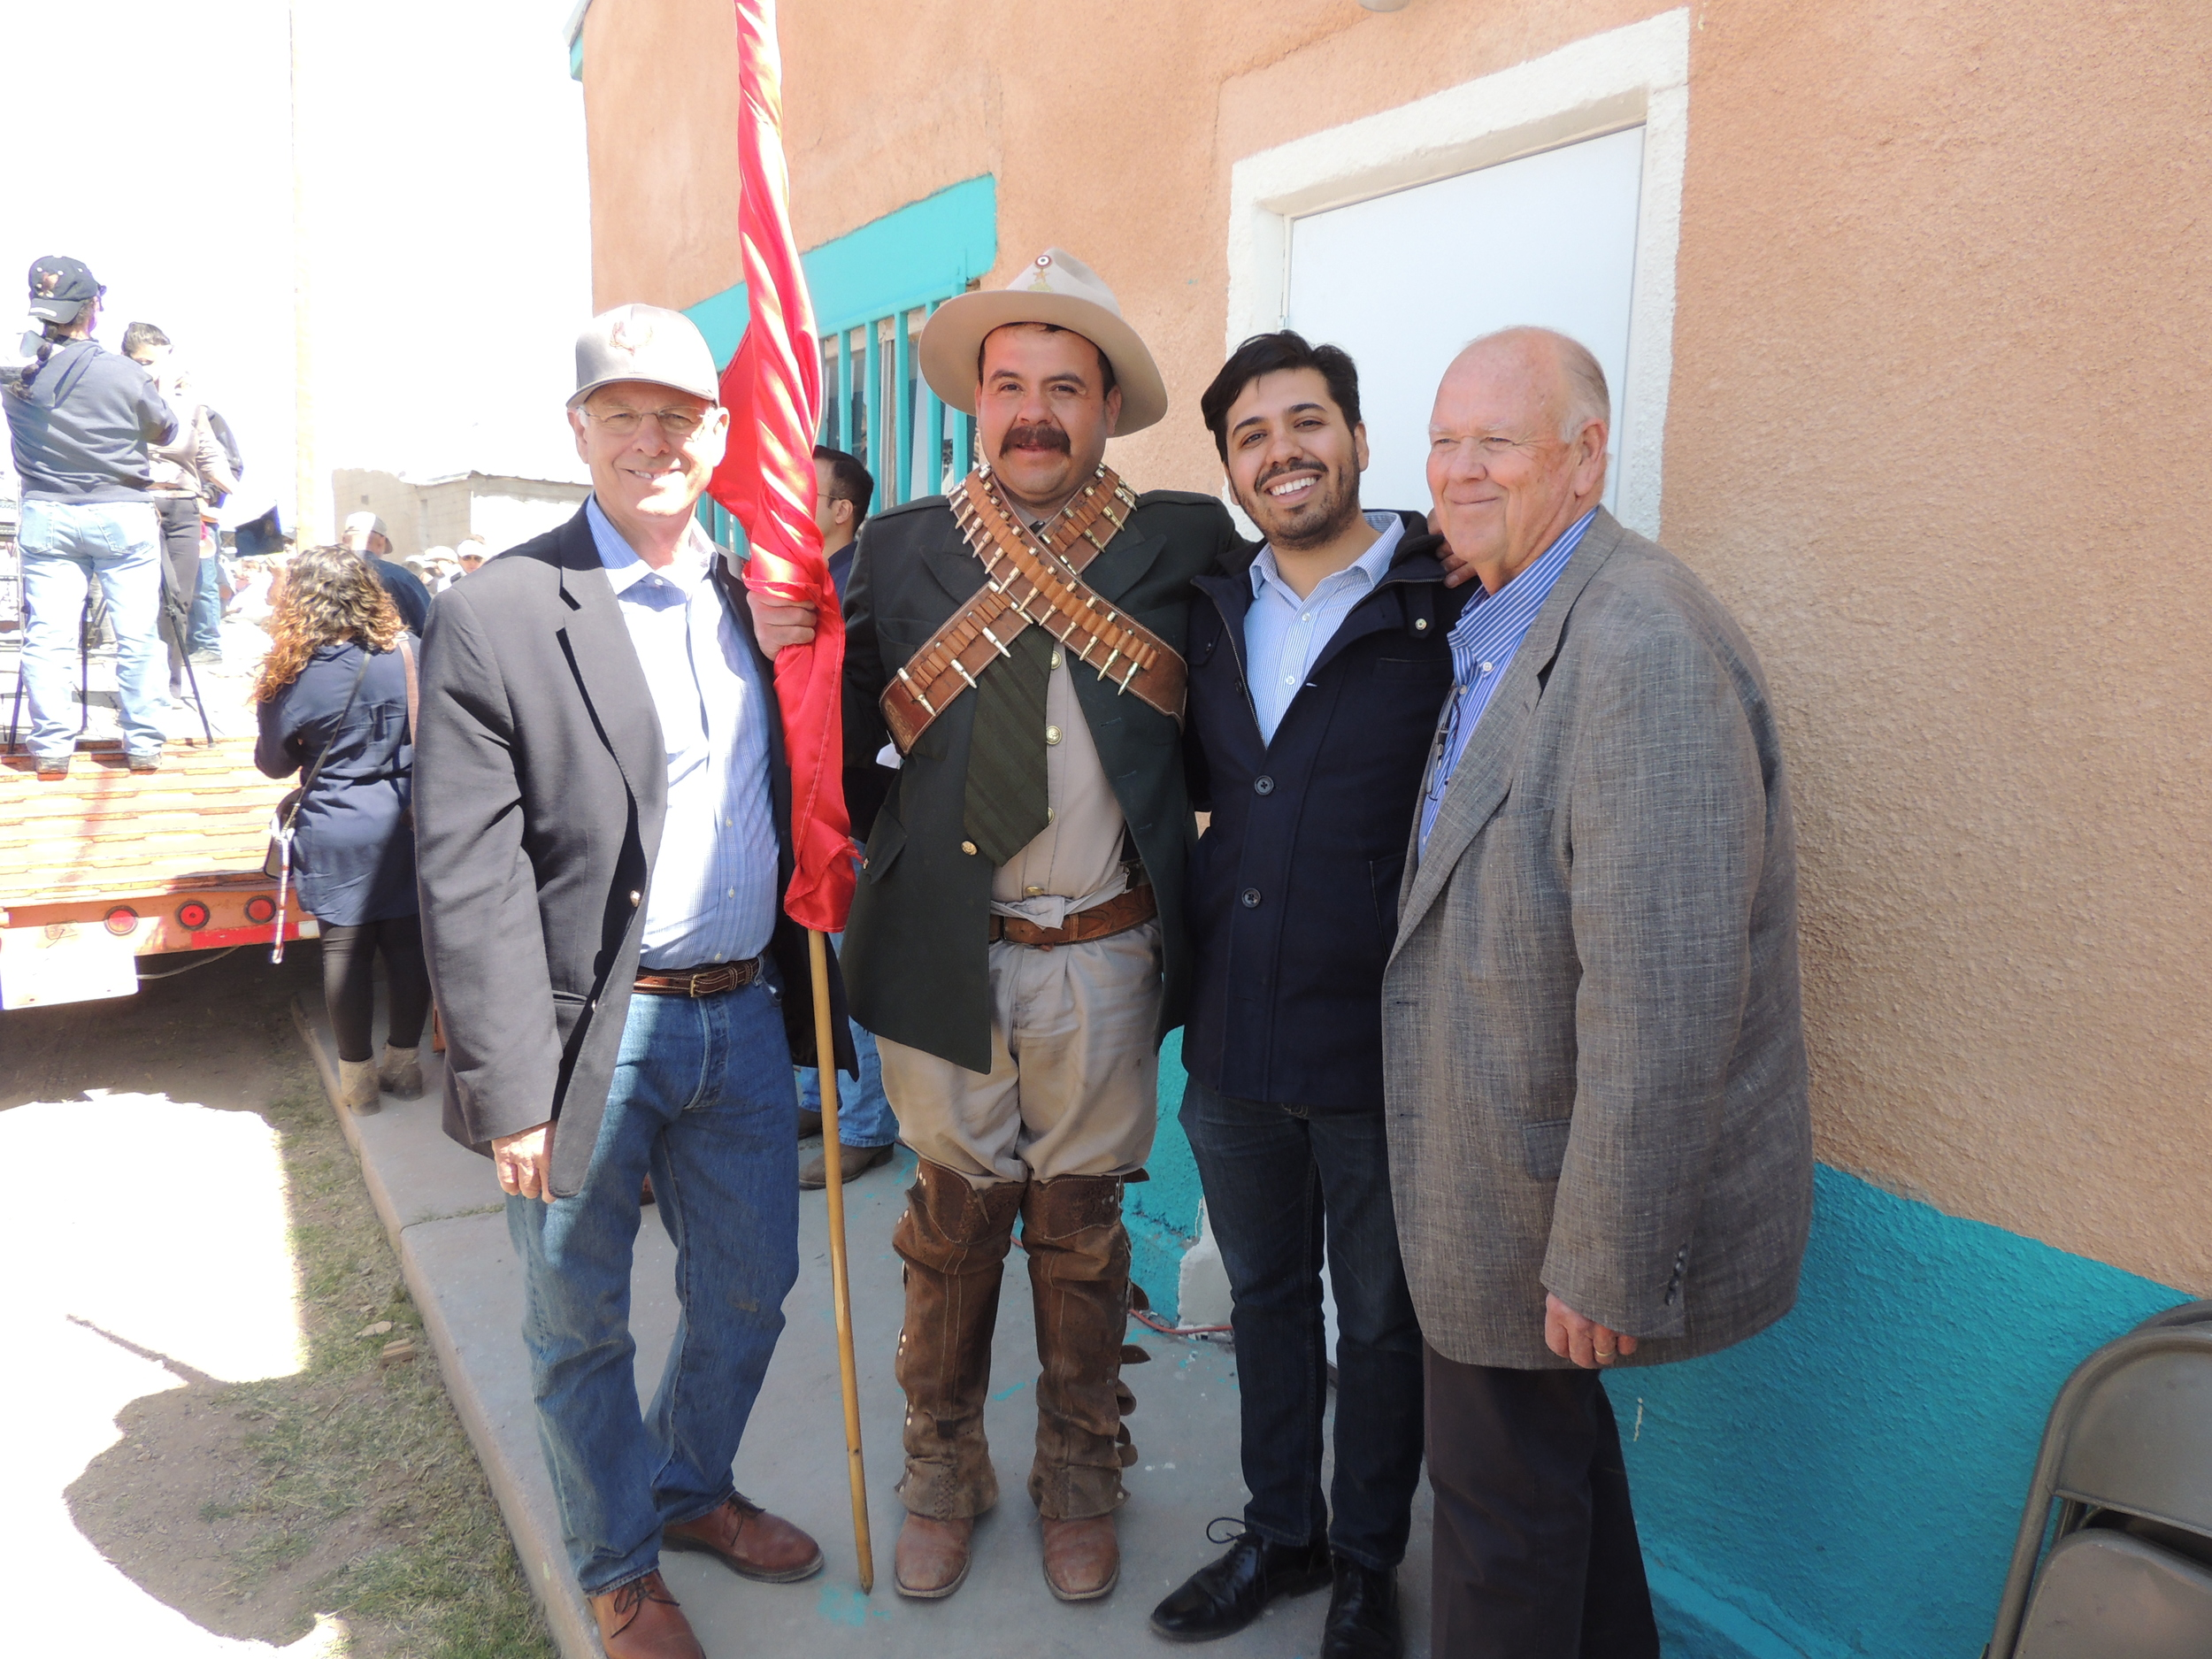 From left U.S. Representative Steve Pearce, Pancho Villa, Francisco Antonio Villa Alcazar, and Mayor of Columbus Philip Skinner